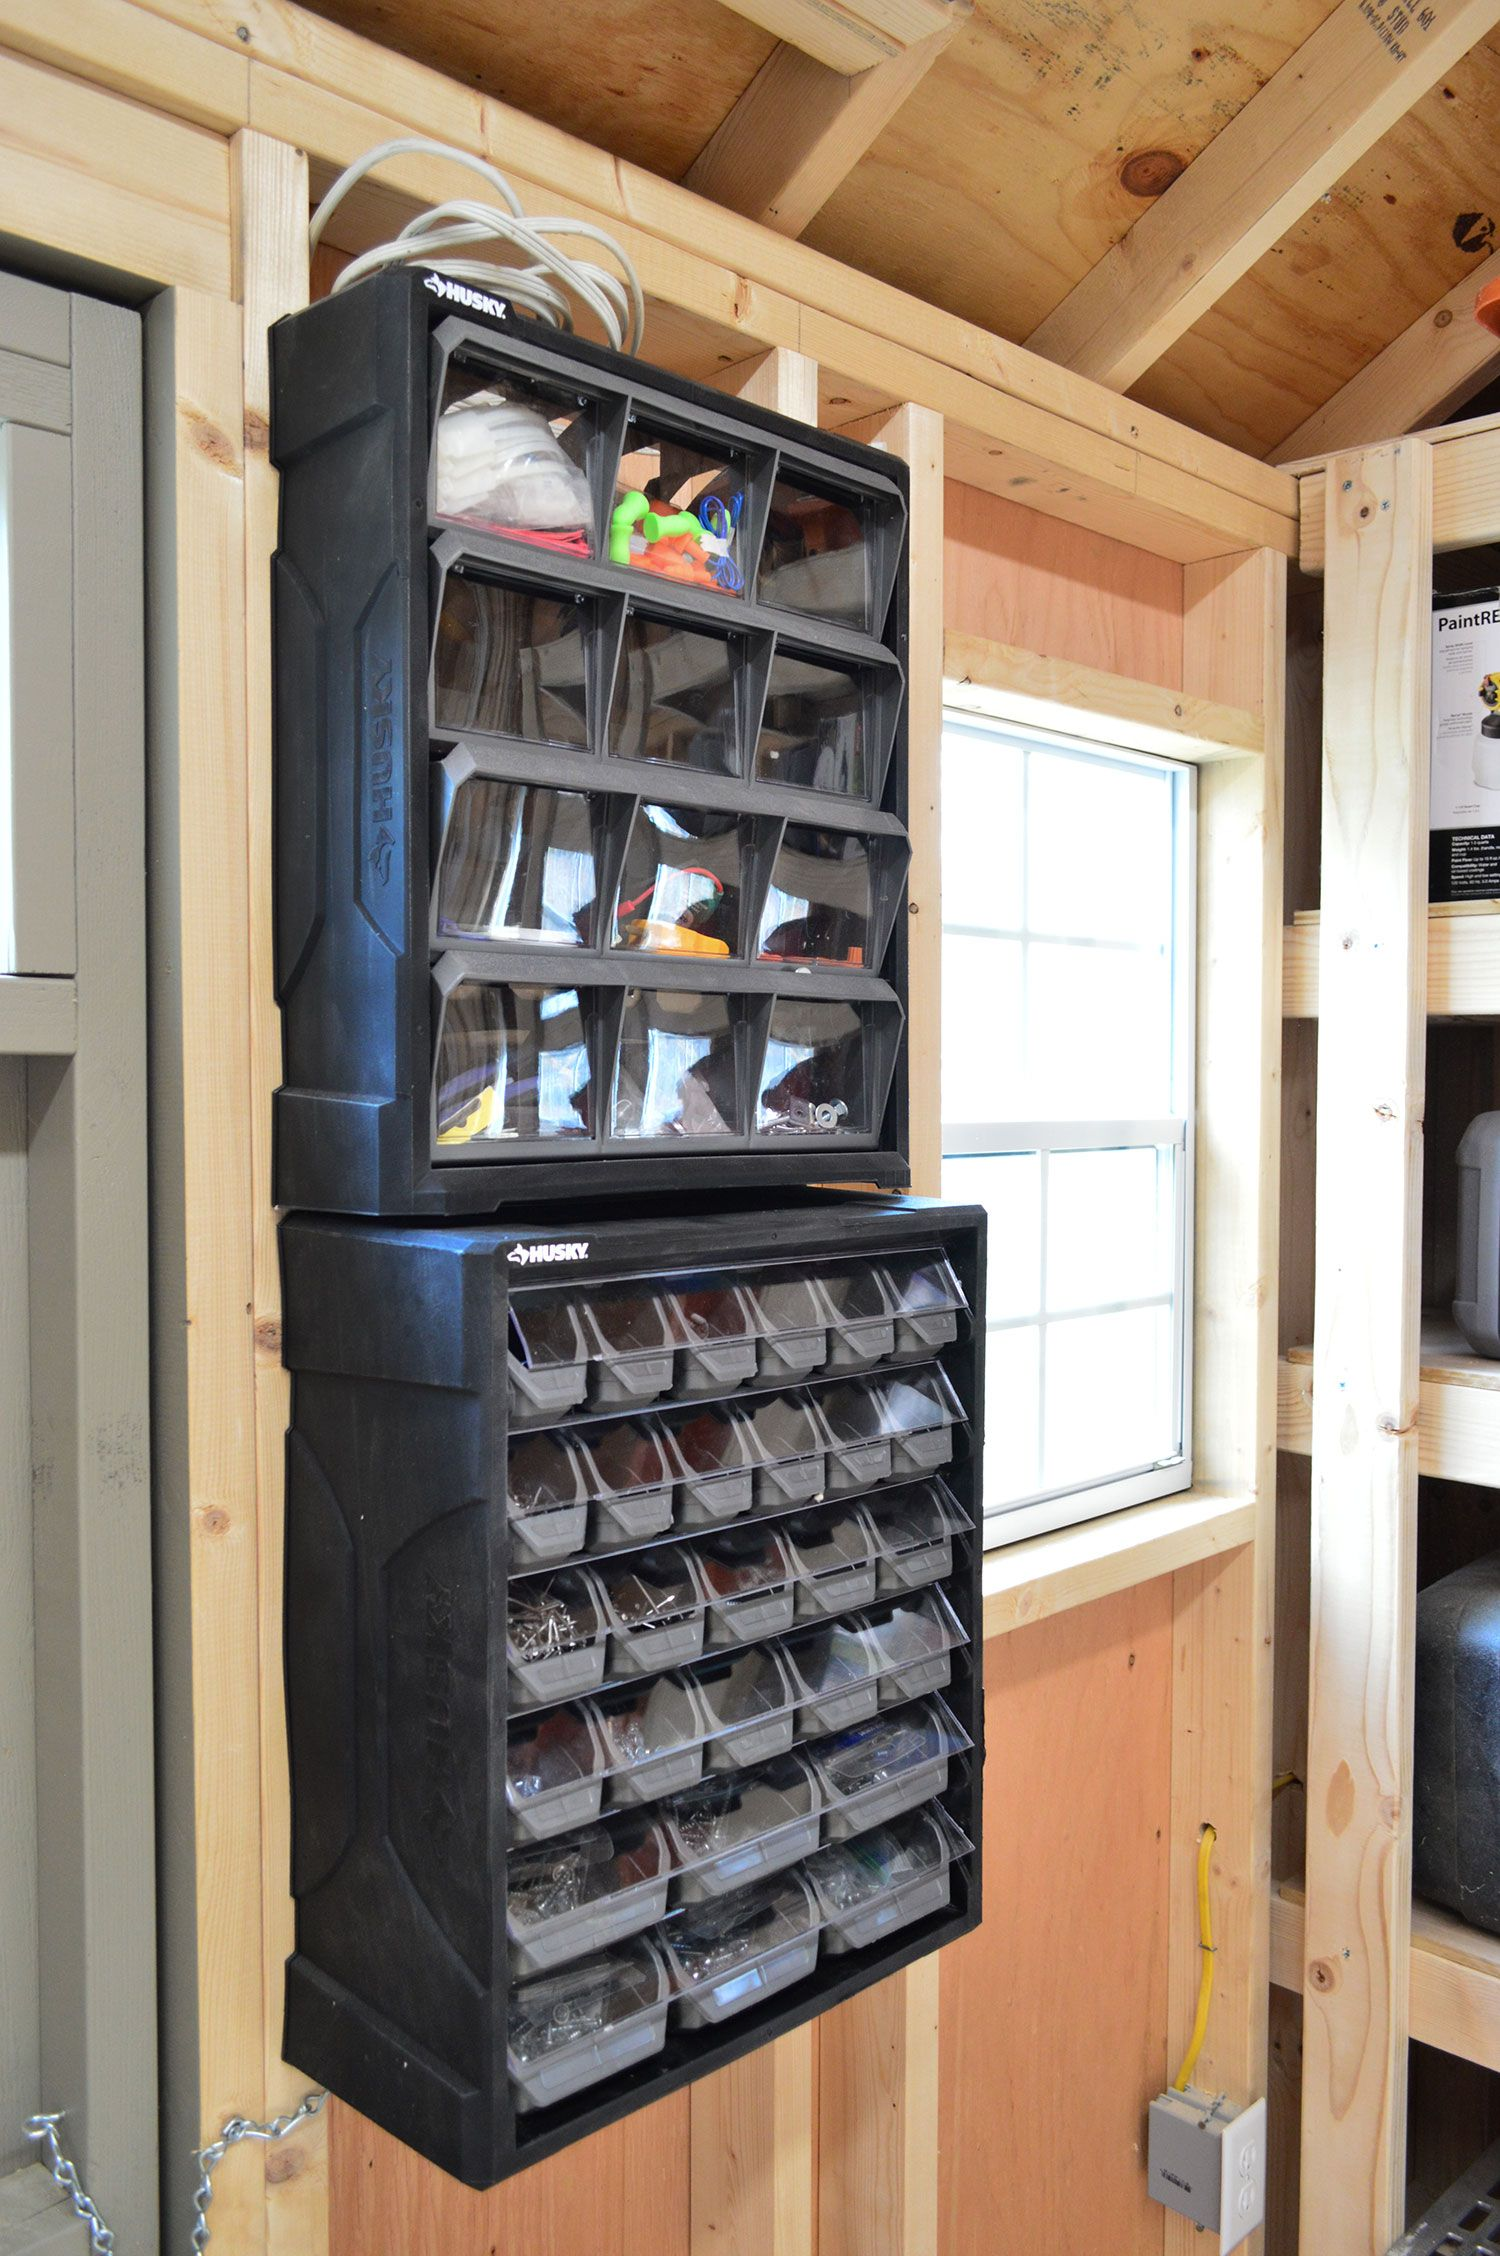 4 Shed Storage Ideas For Tons Of Added Function | Storage ...